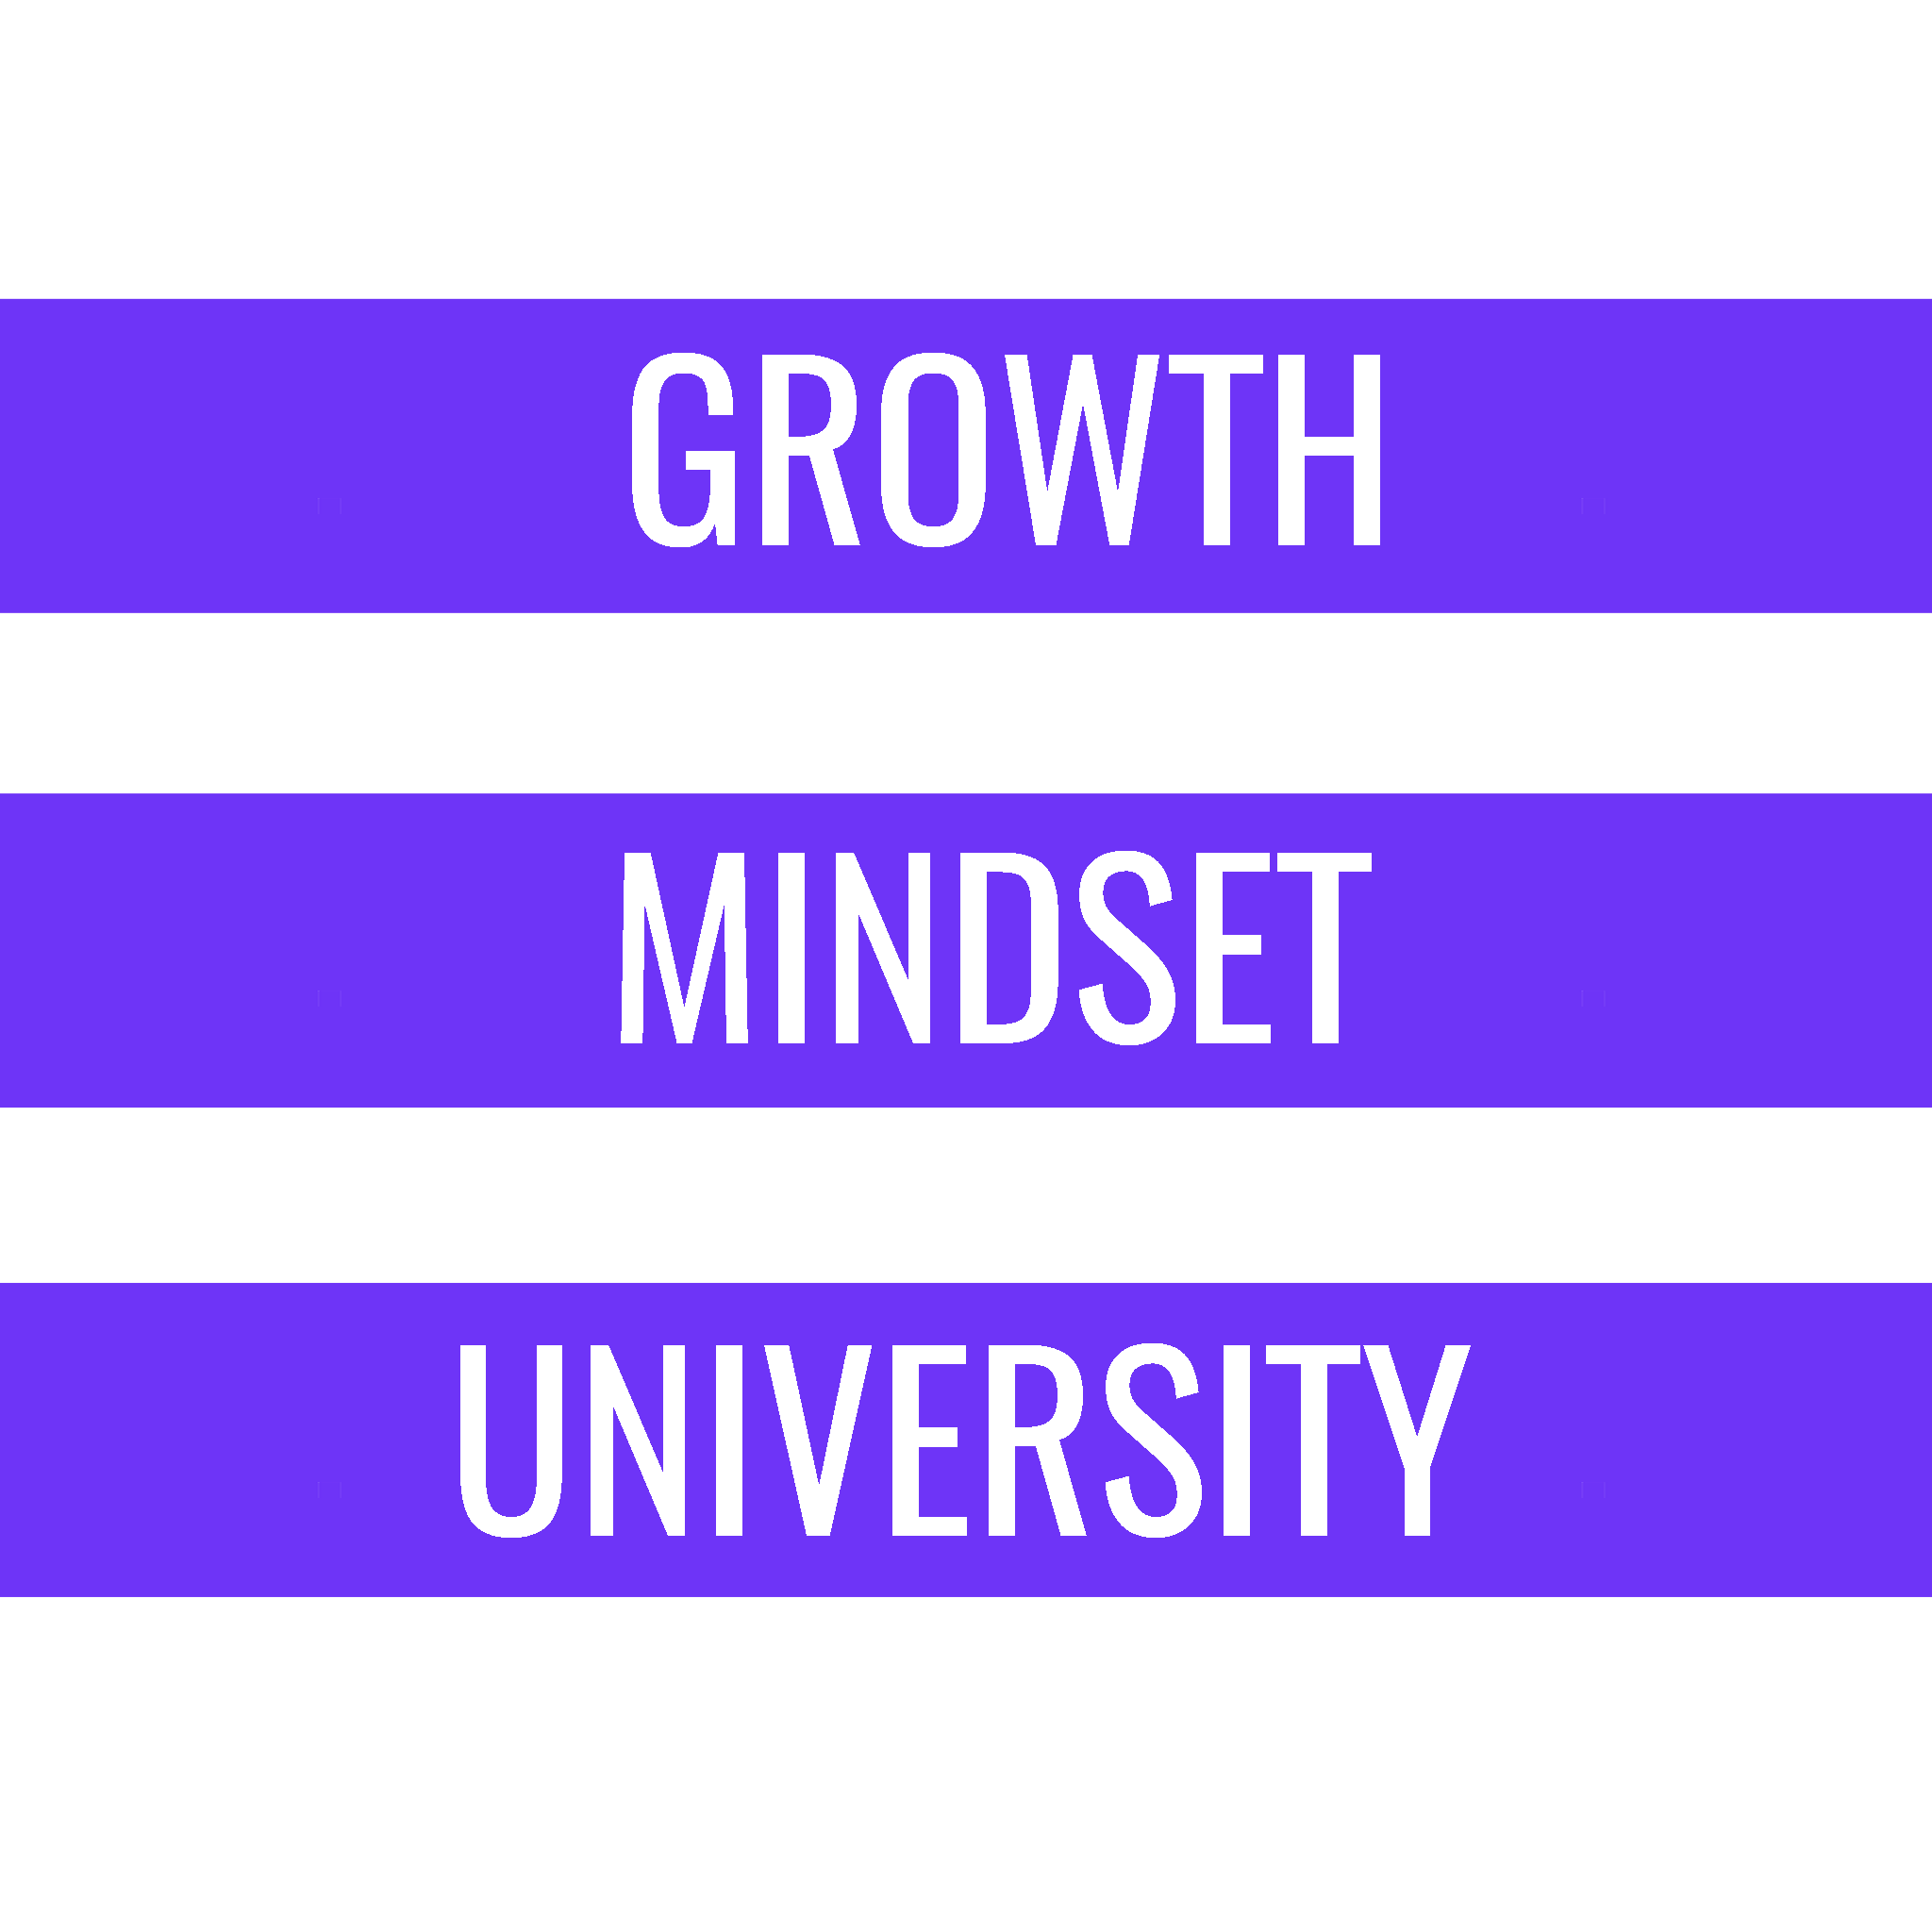 Growth Mindset University album art